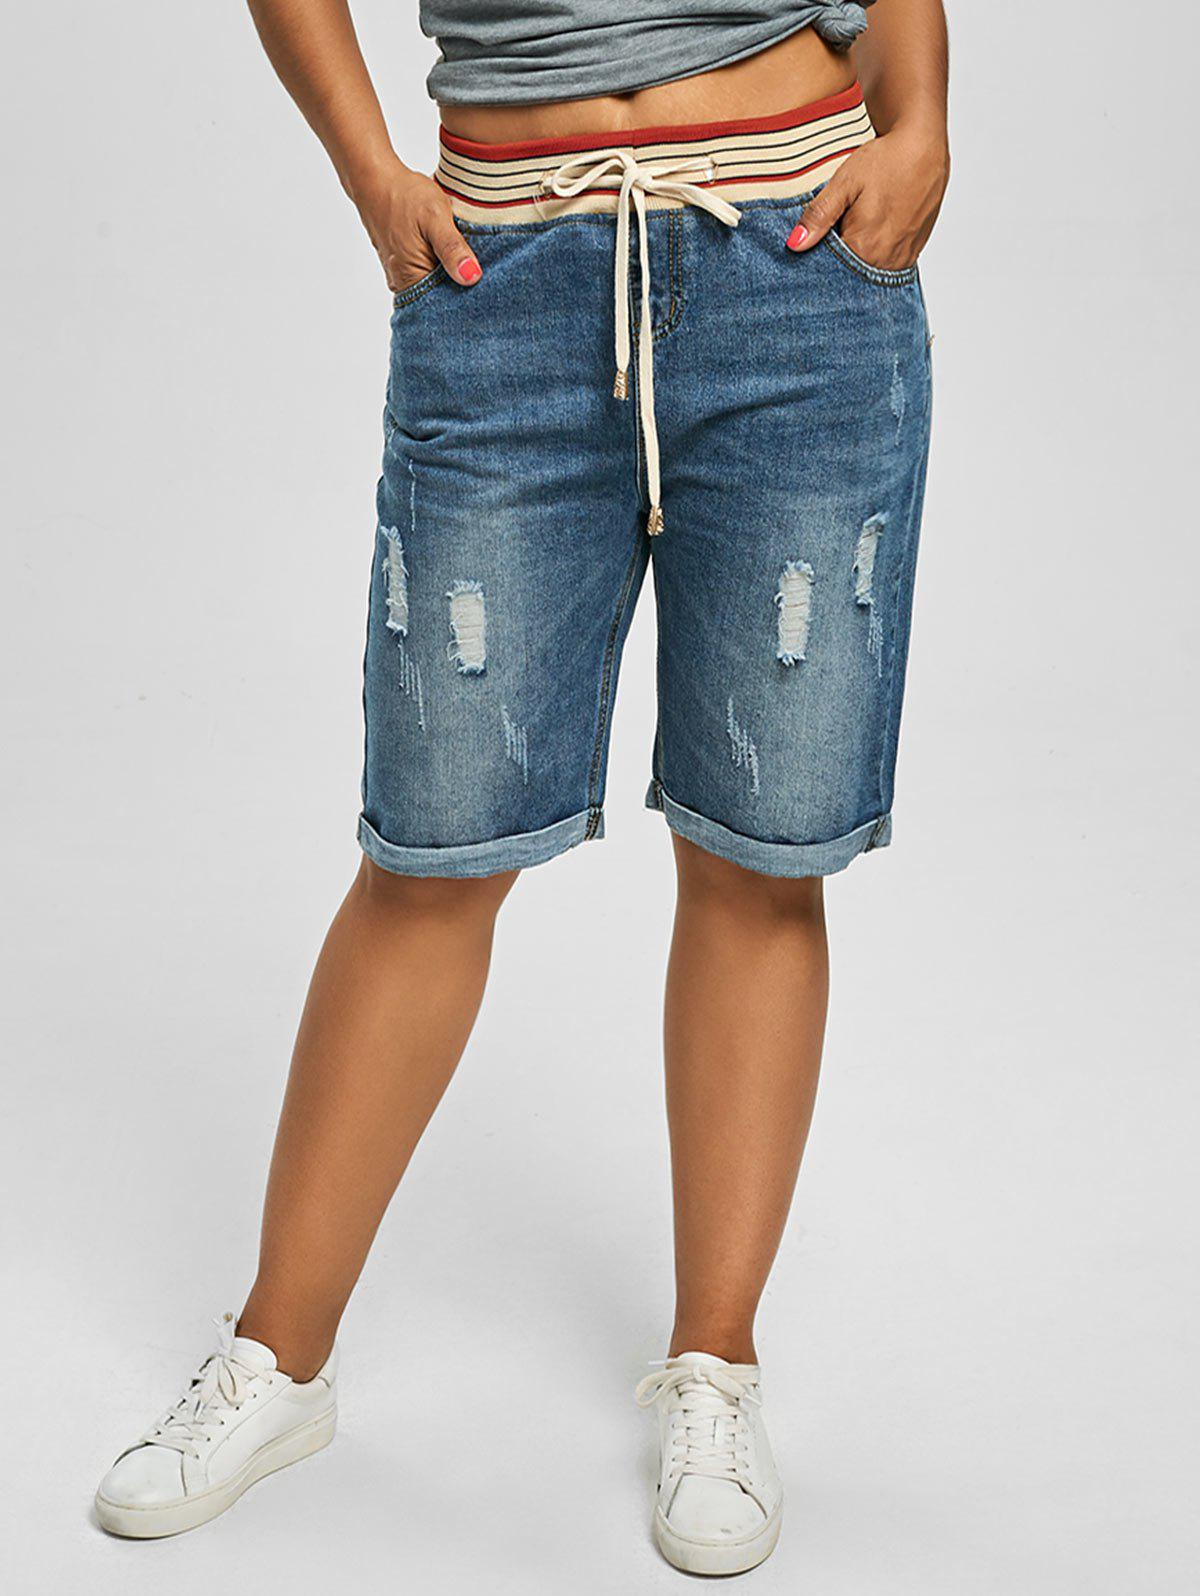 Plus Size Denim Ripped ShortsWOMEN<br><br>Size: 5XL; Color: DENIM BLUE; Style: Streetwear; Length: Knee-Length; Material: Polyester; Fit Type: Straight; Waist Type: Mid; Closure Type: Elastic Waist; Pattern Type: Others; Pant Style: Straight; With Belt: No; Weight: 0.5000kg; Package Contents: 1 x Shorts;